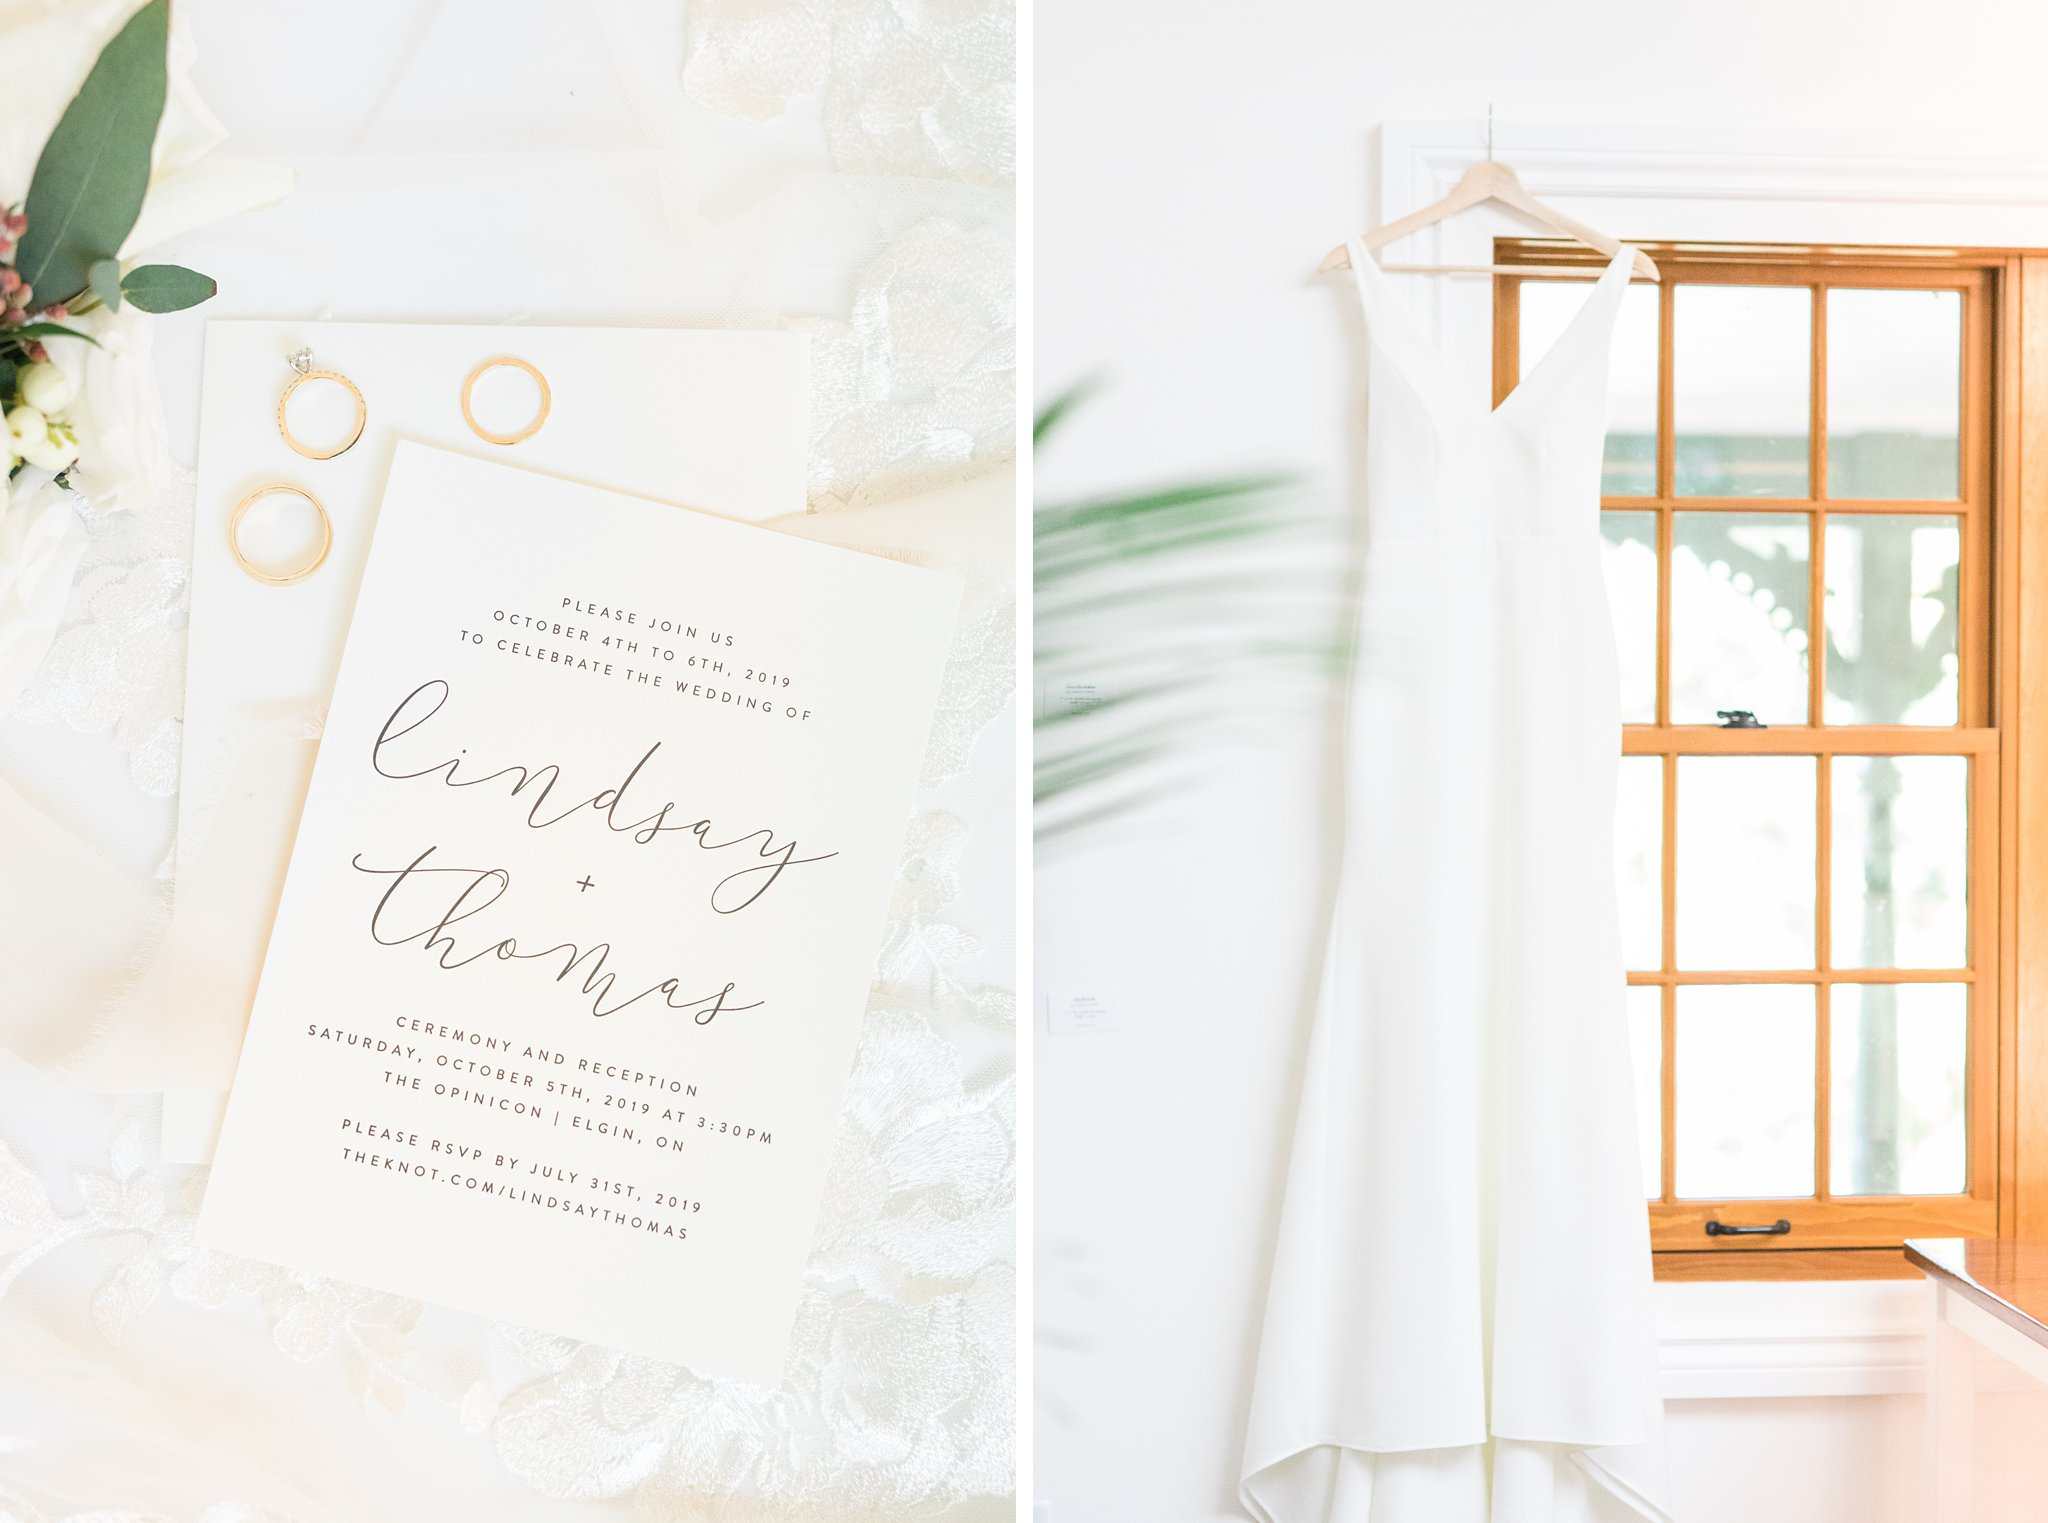 Calligraphy cursive wedding invitation minimalist, Opinicon Wedding Photos by Amy Pinder Photography